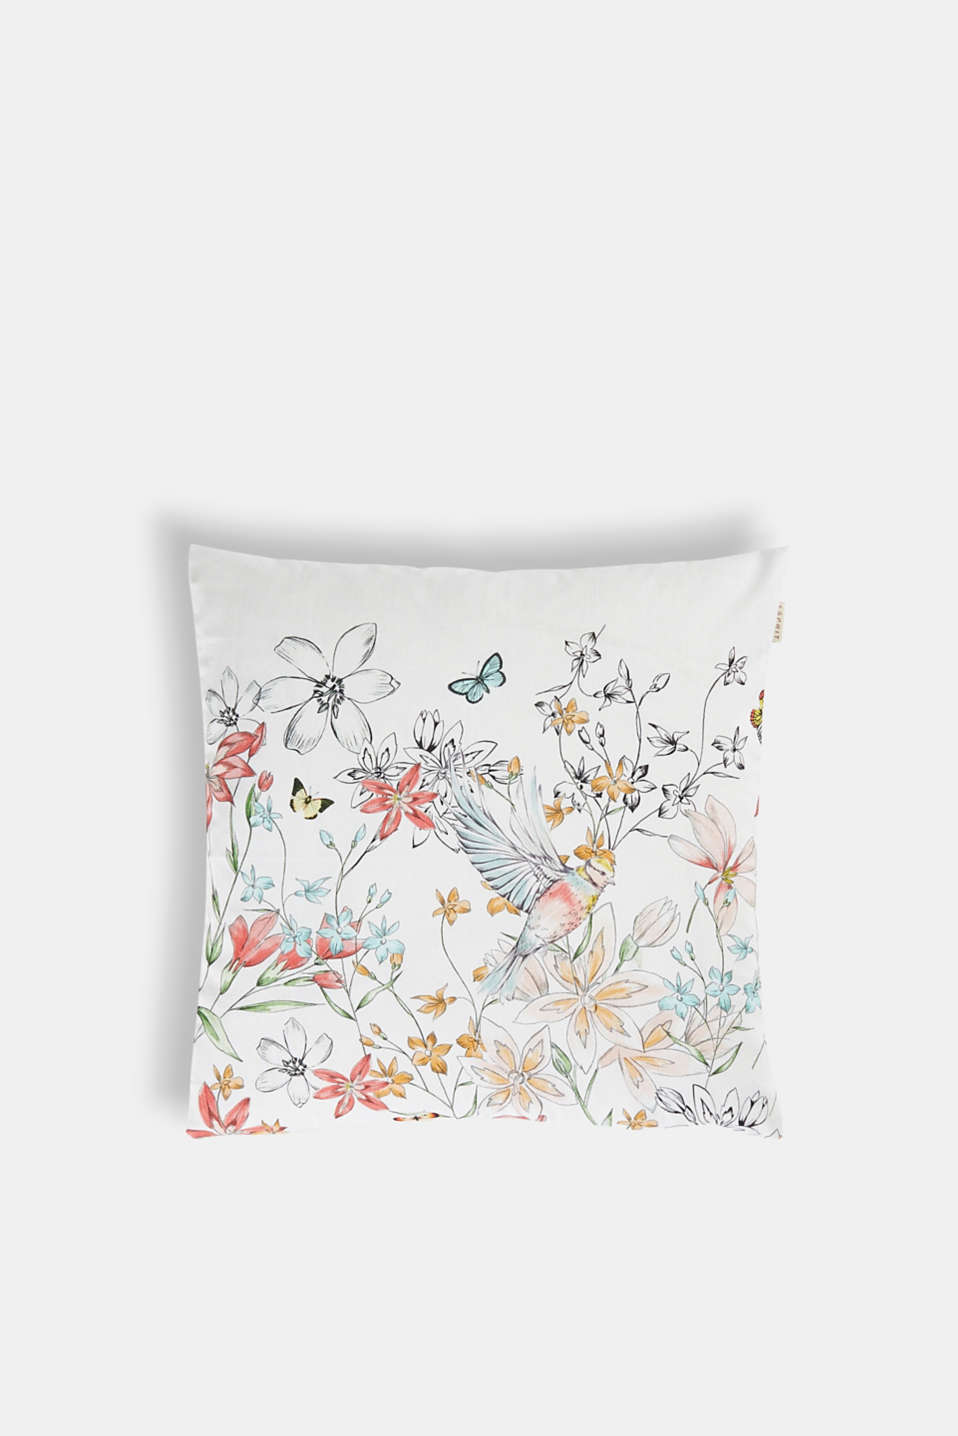 Esprit - Cushion cover with digital floral print